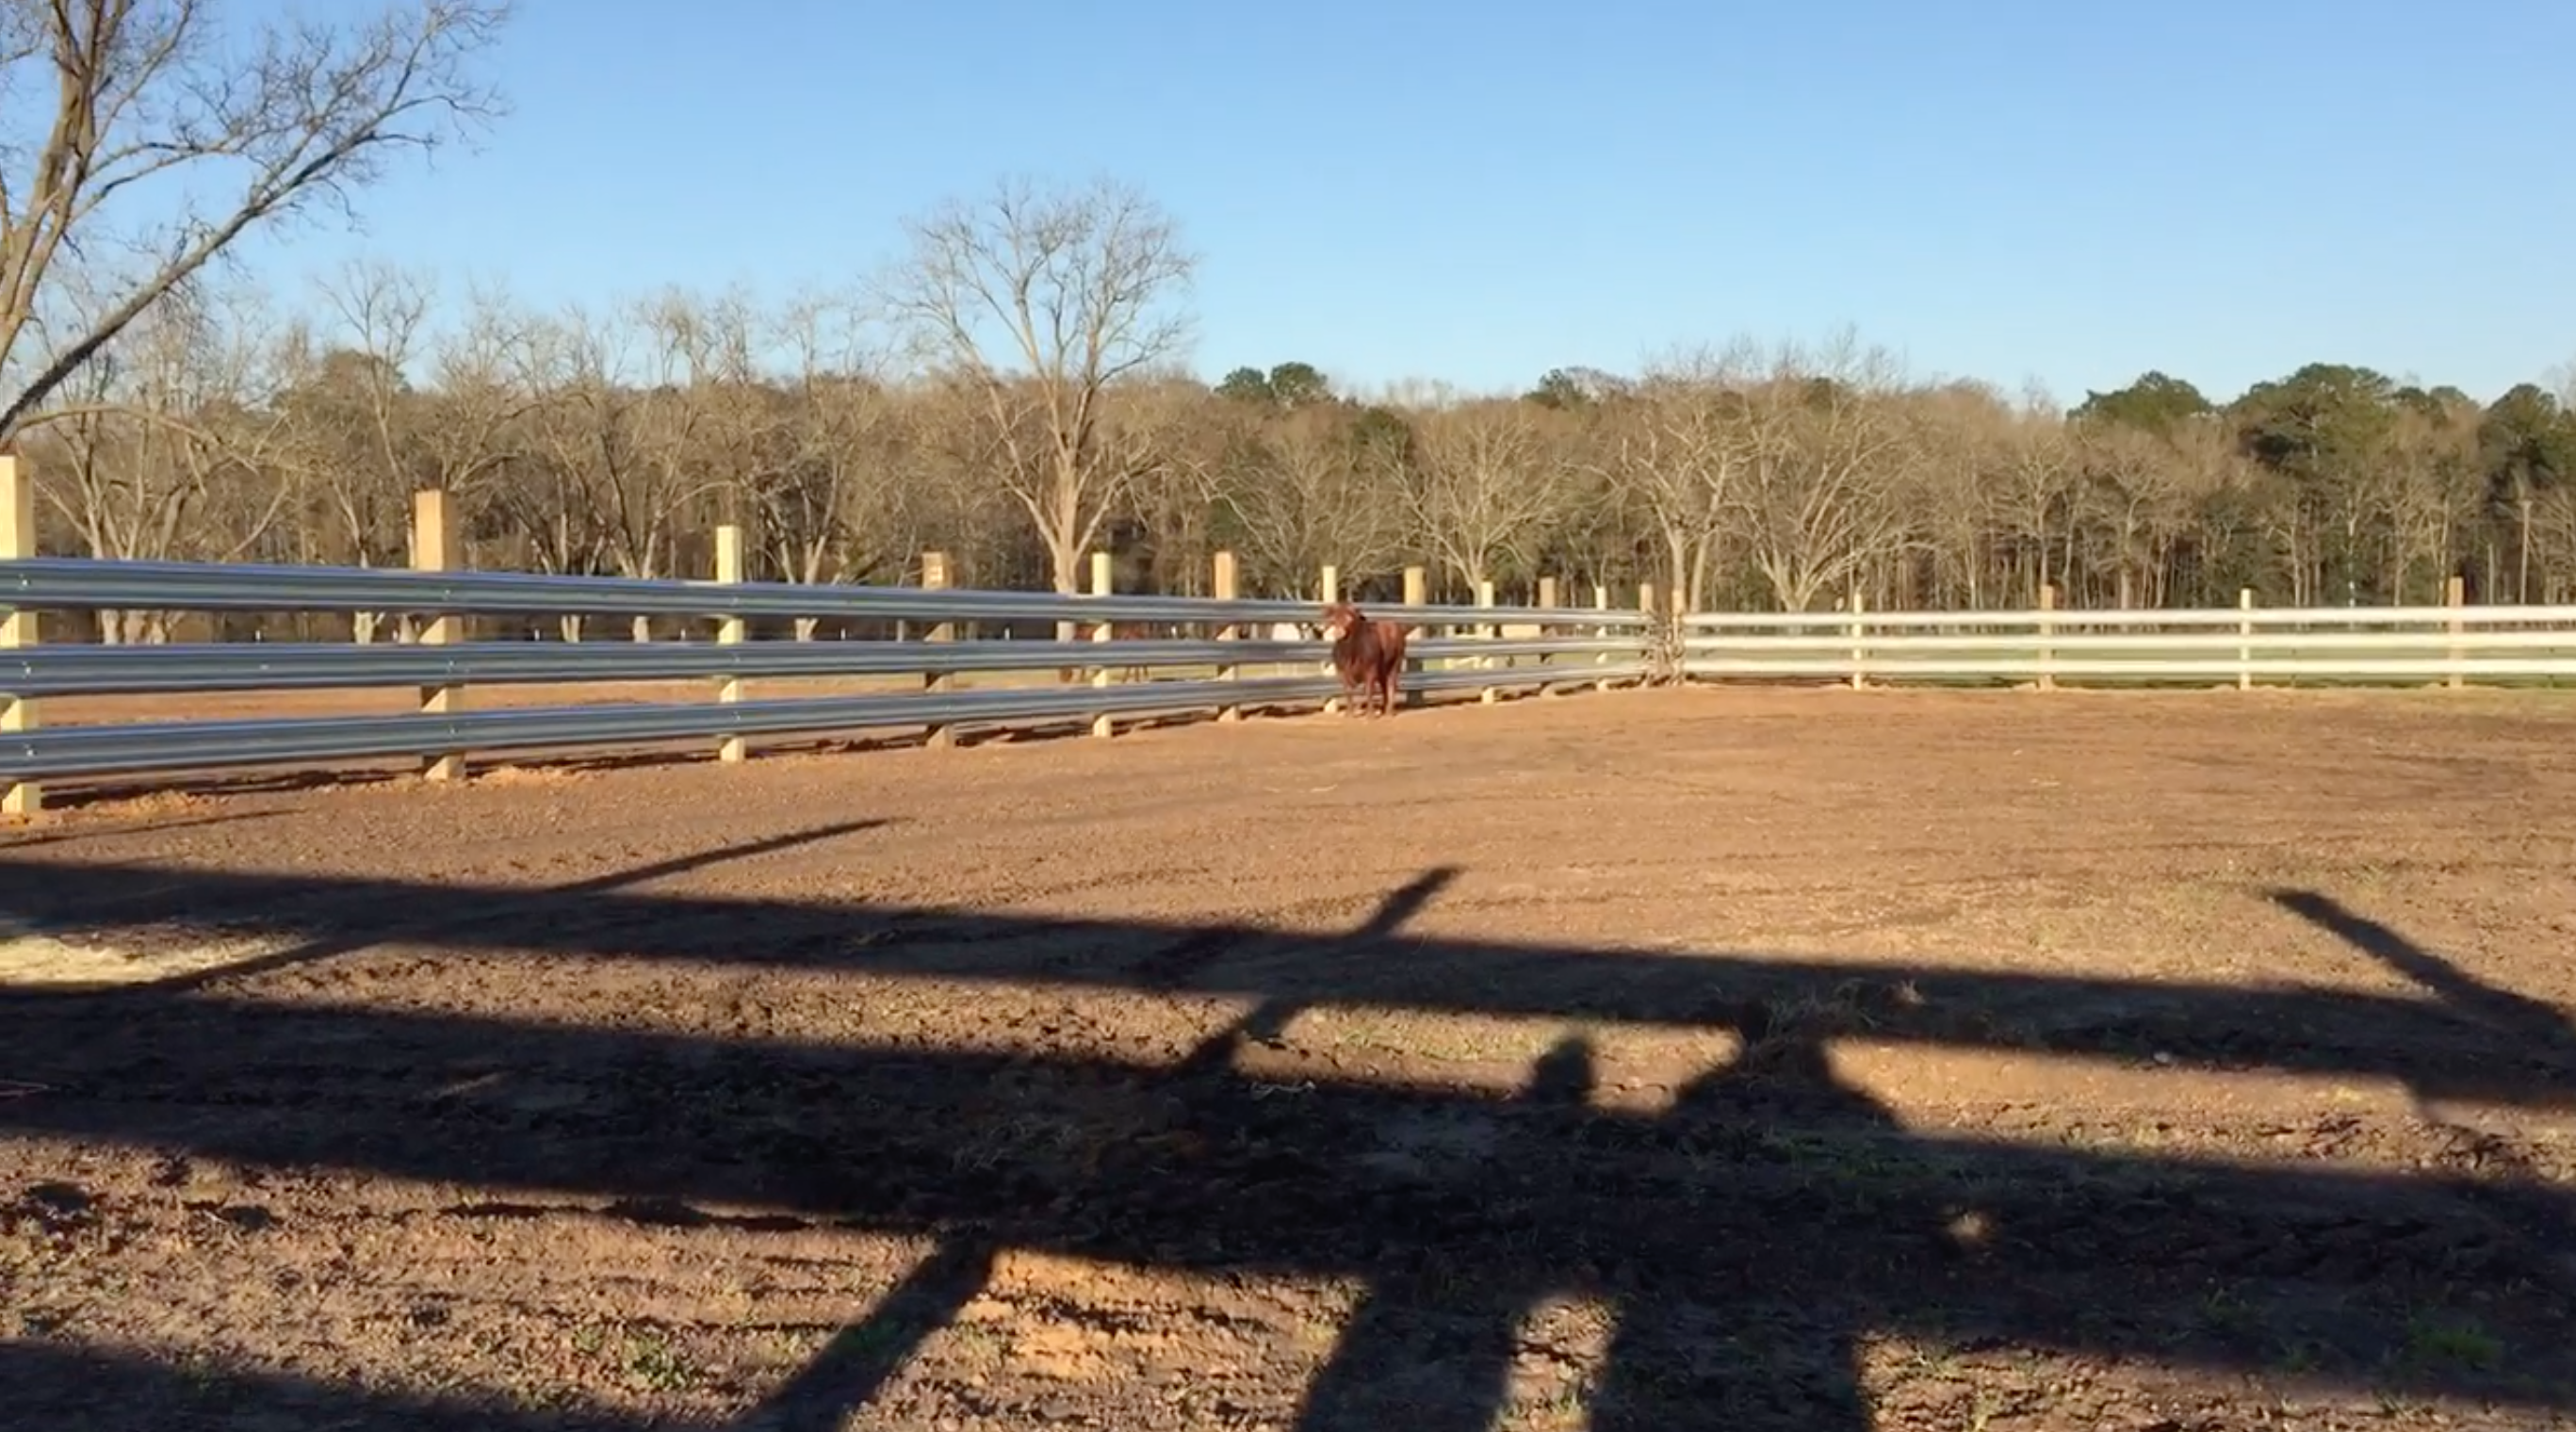 A nice arena built out of LiveStock Steel Guardrail